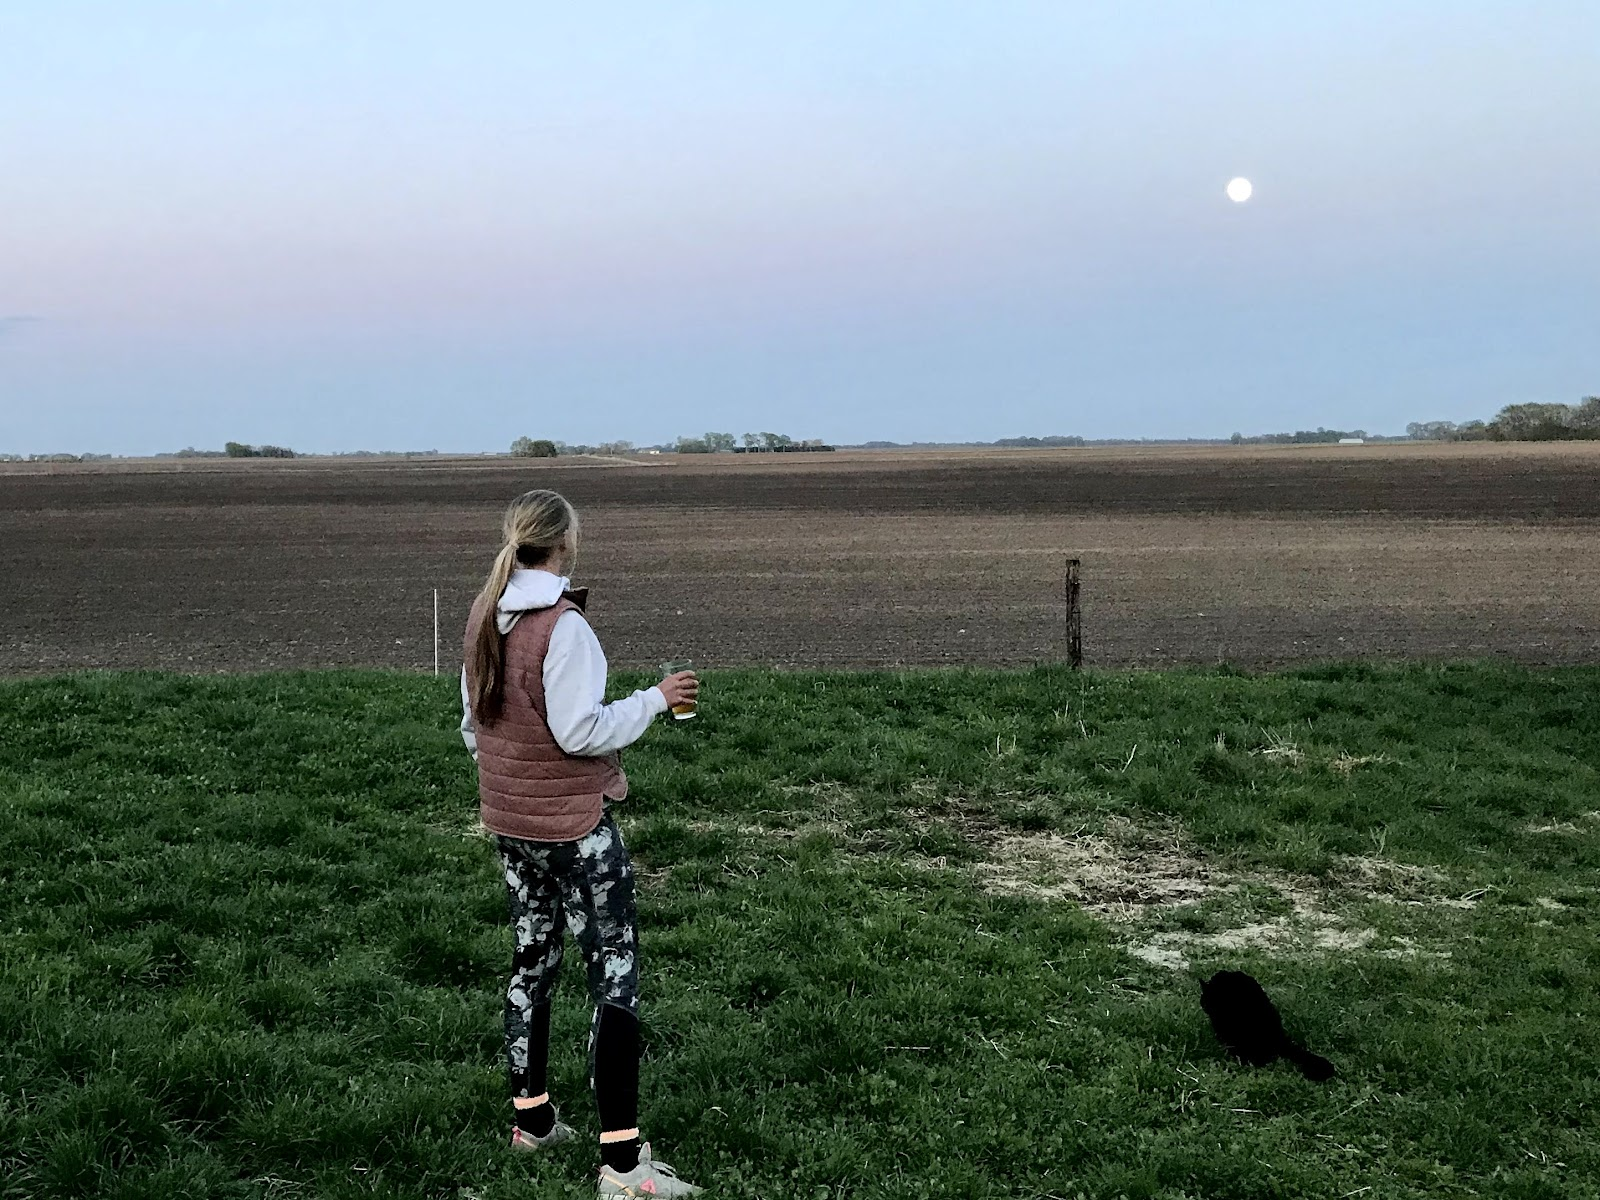 Annie stands looking at the distant moon with cat sitting nearby.